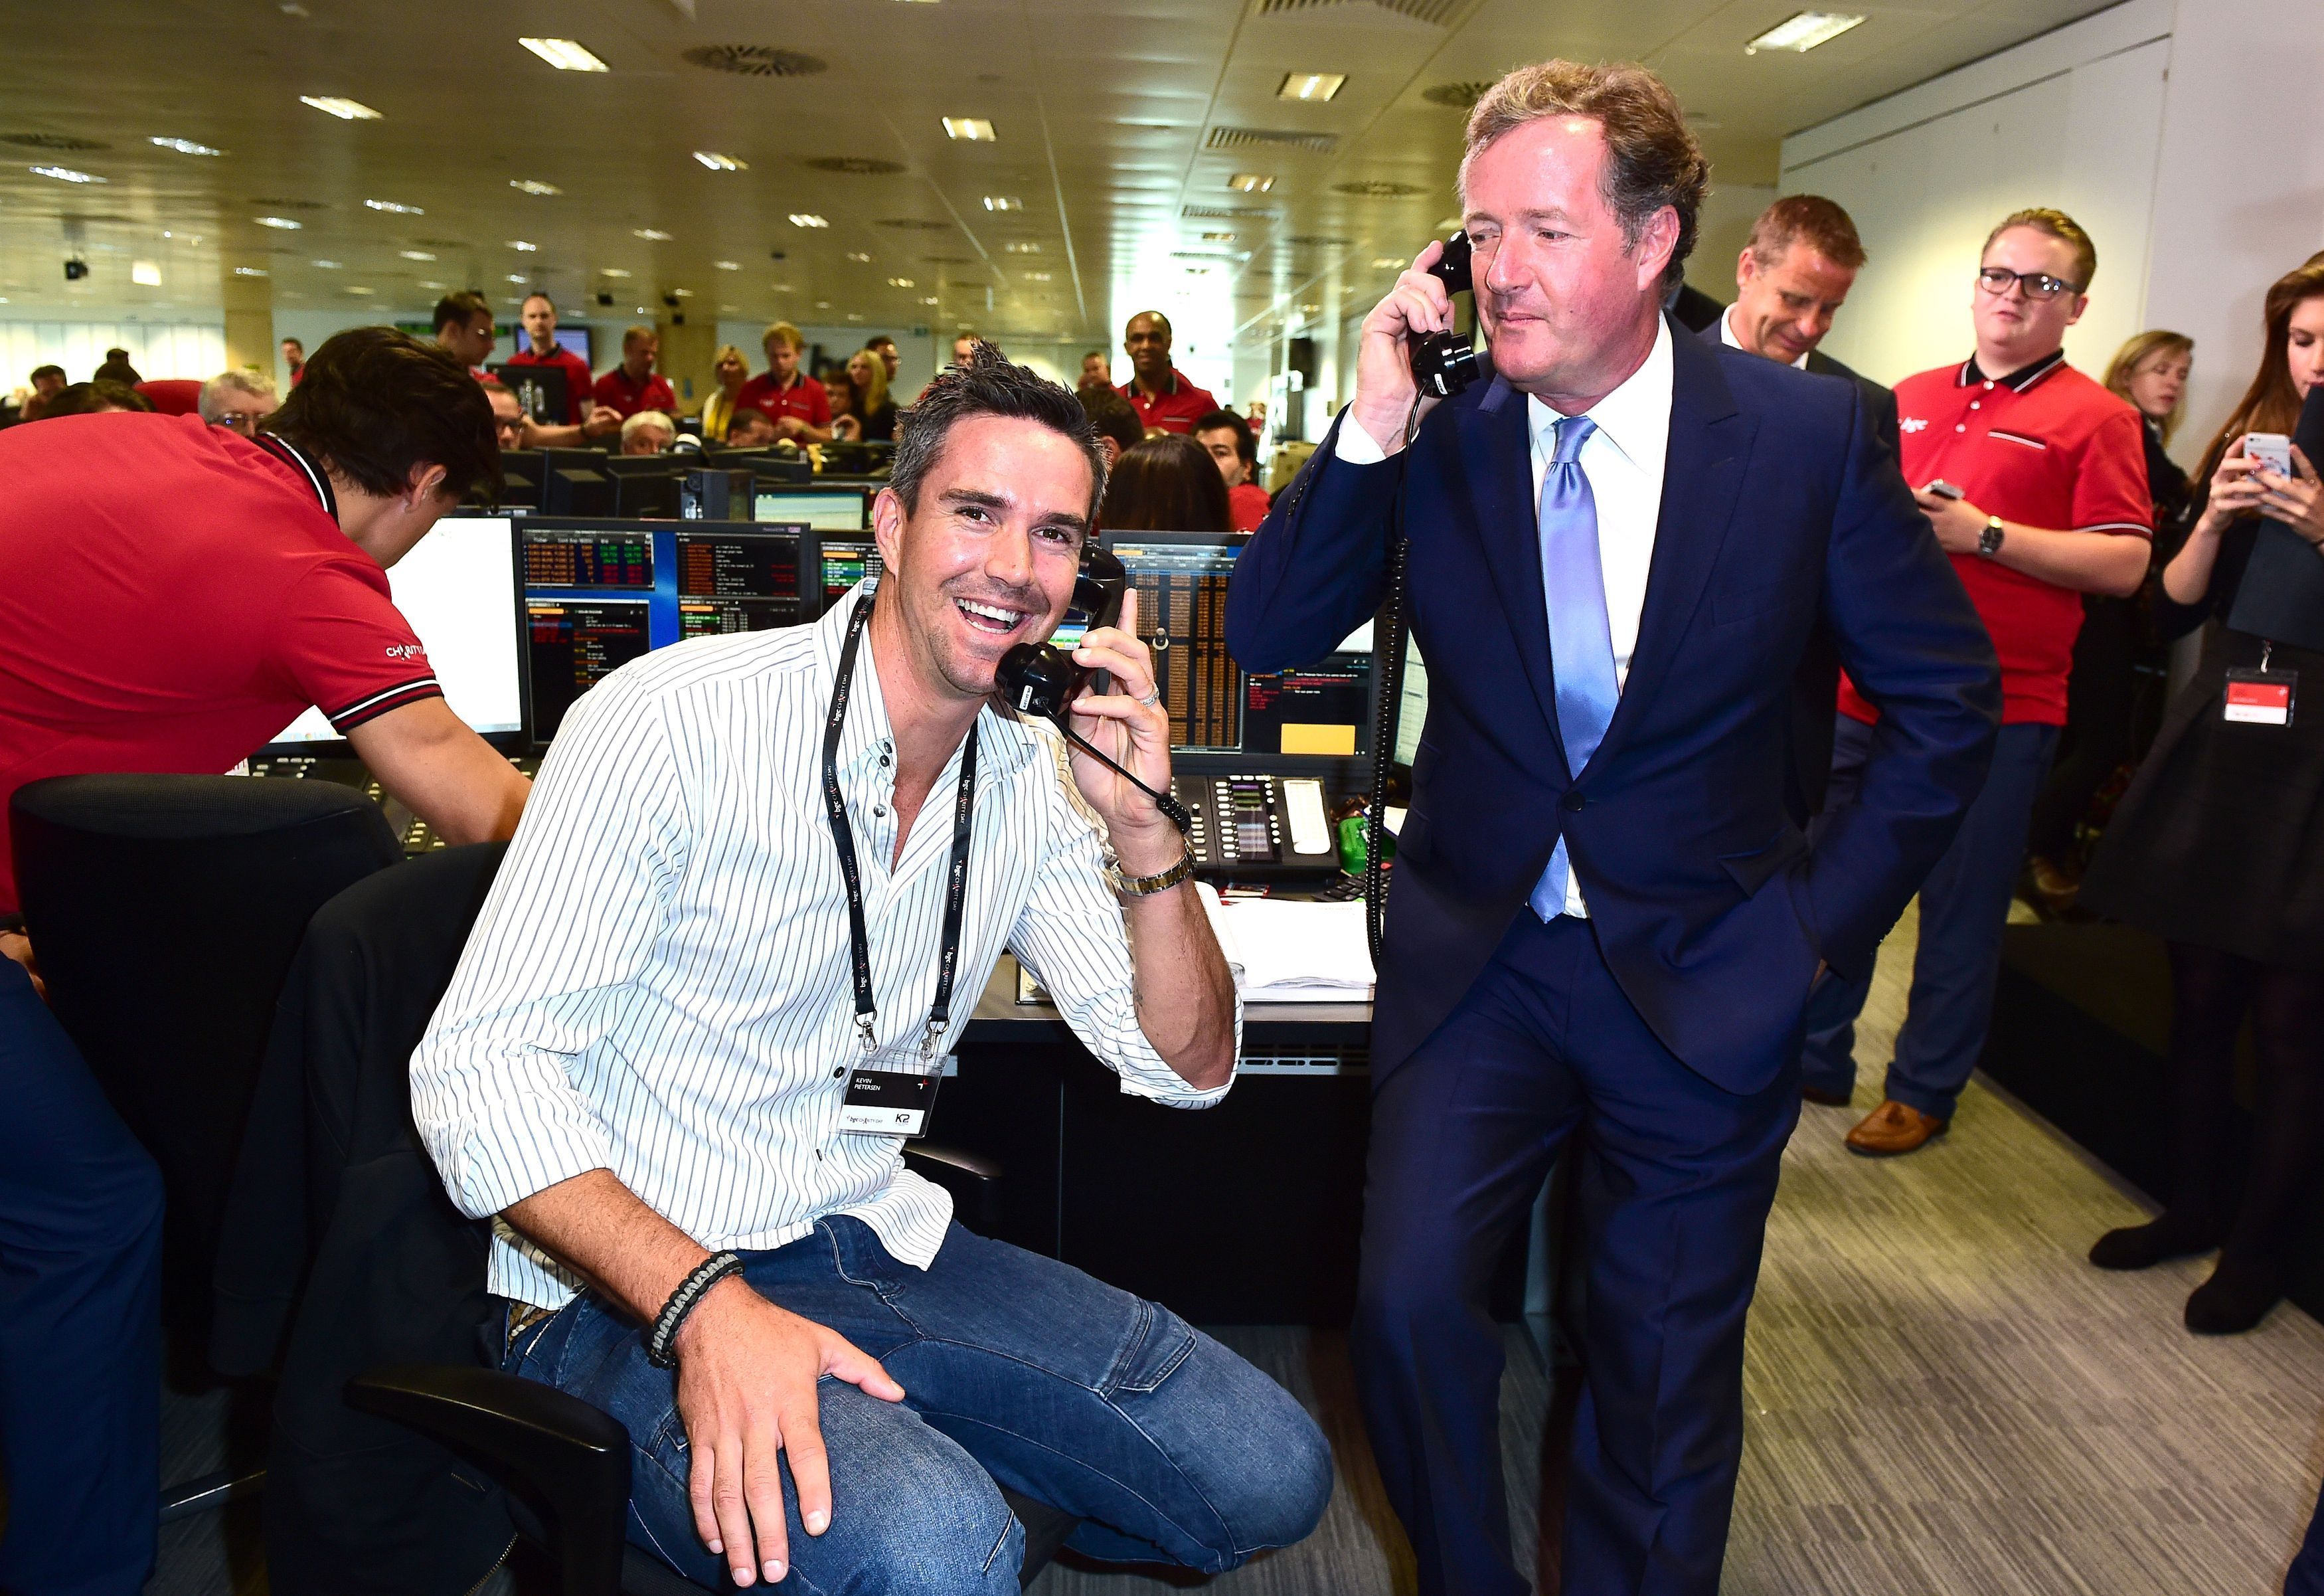 Kevin Pietersen (left) and Piers Morgan take part in the BGC Annual Global Charity Day at Canary Wharf in London.